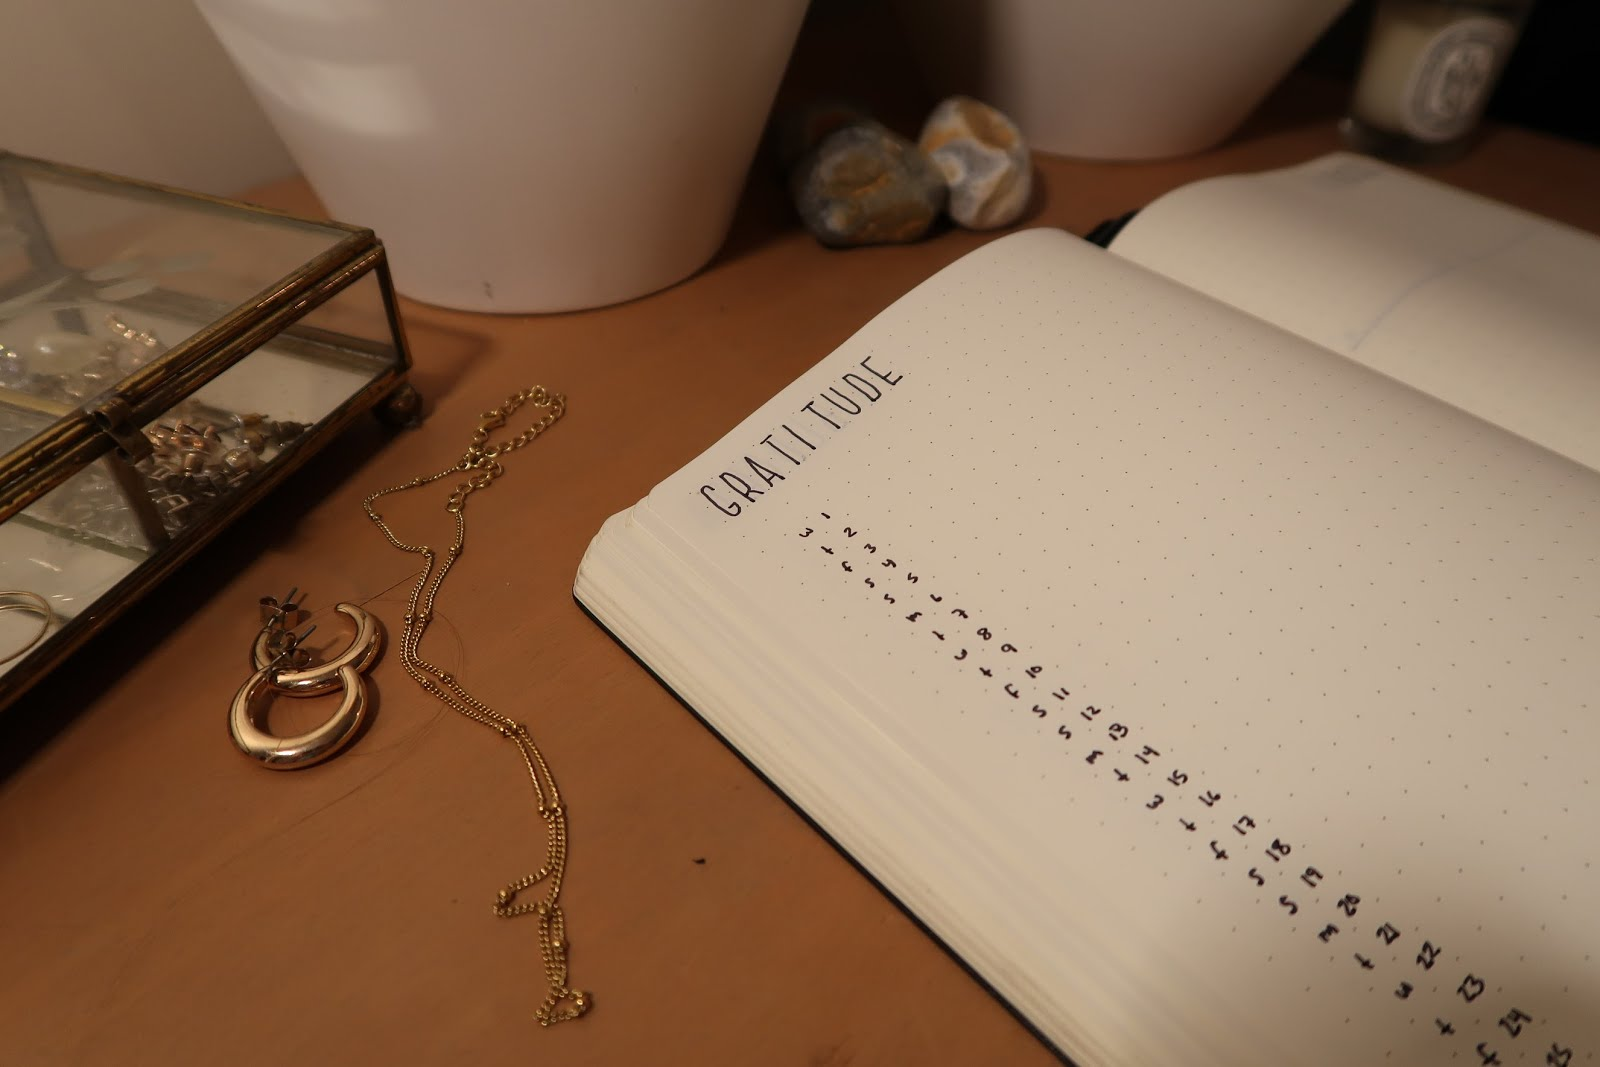 bullet journal bujo planner planning schedule calendar dotted notebook minimal minimalist black and white staedtler triplus fineliner pen gold jewelry box earrings necklace gratitude thankful log mindful positive good thoughts happy happiness